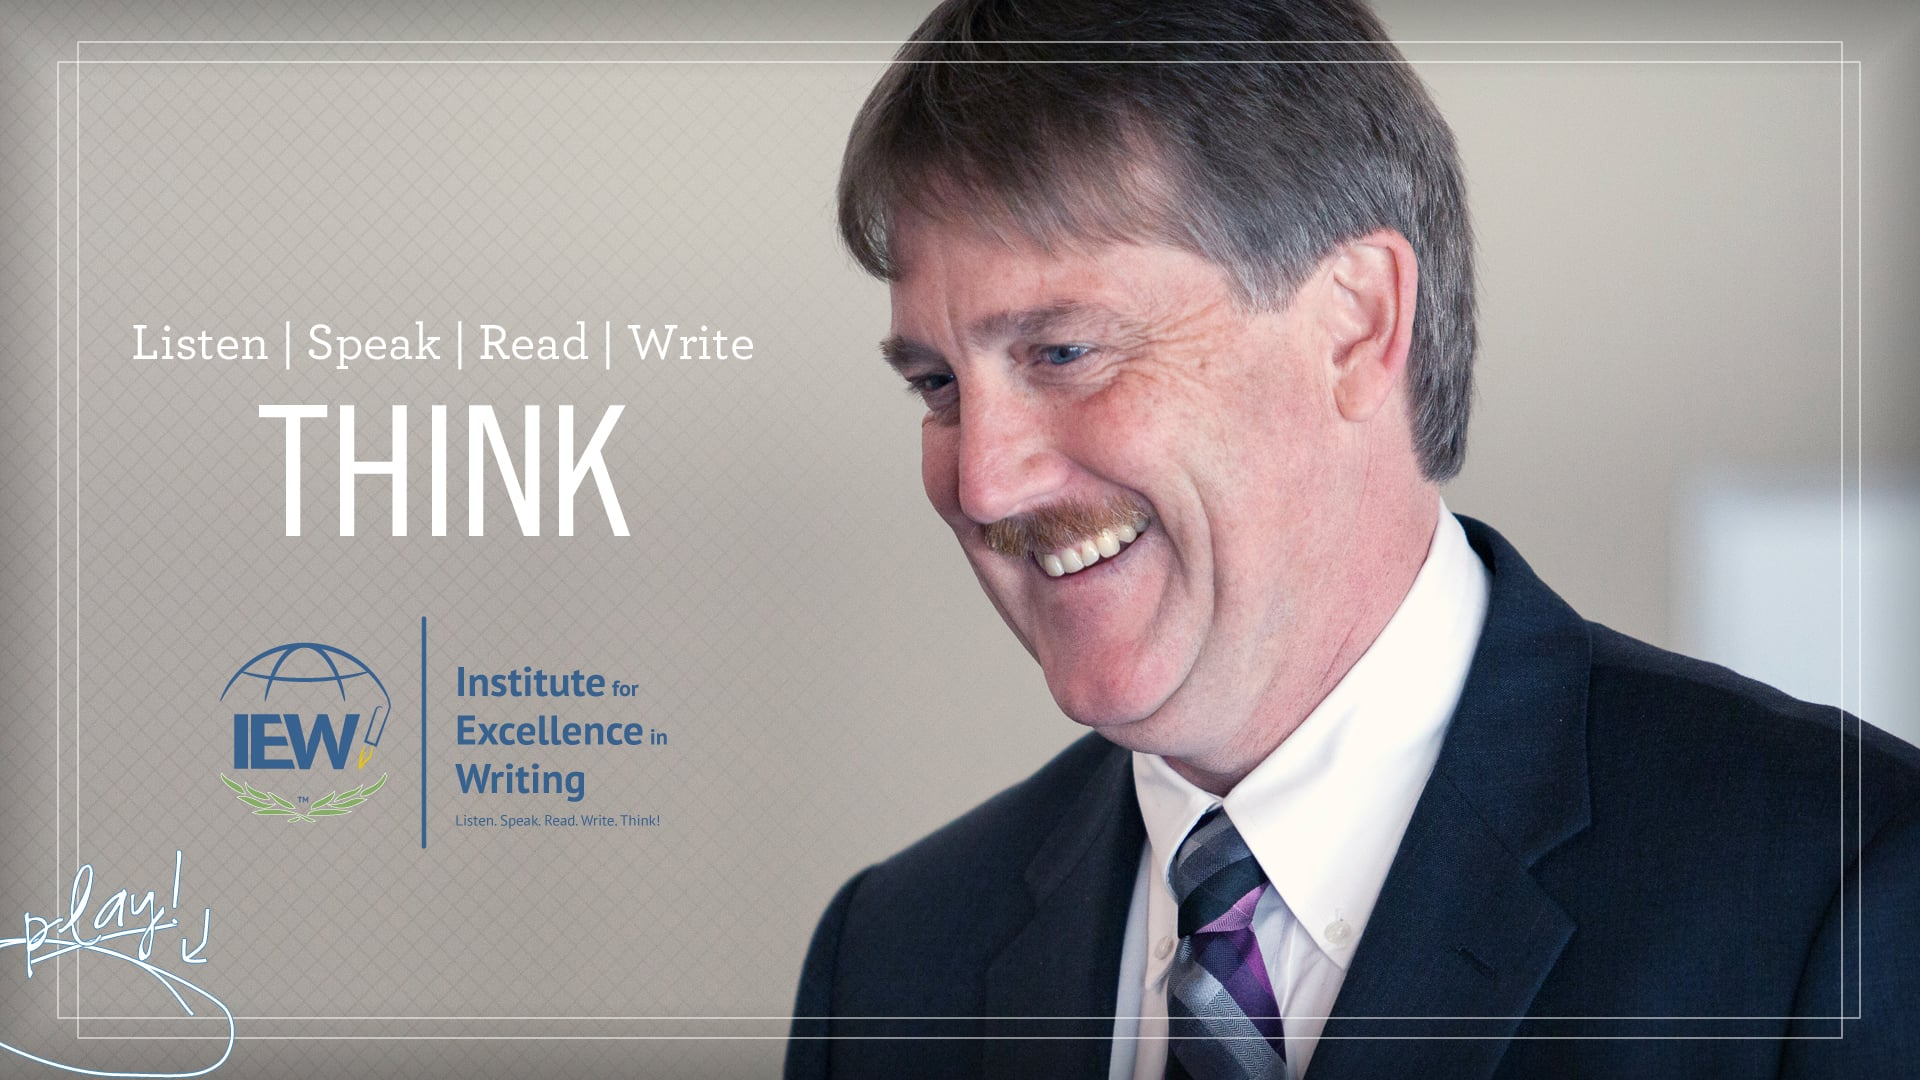 Learn to Write and THINK with IEW